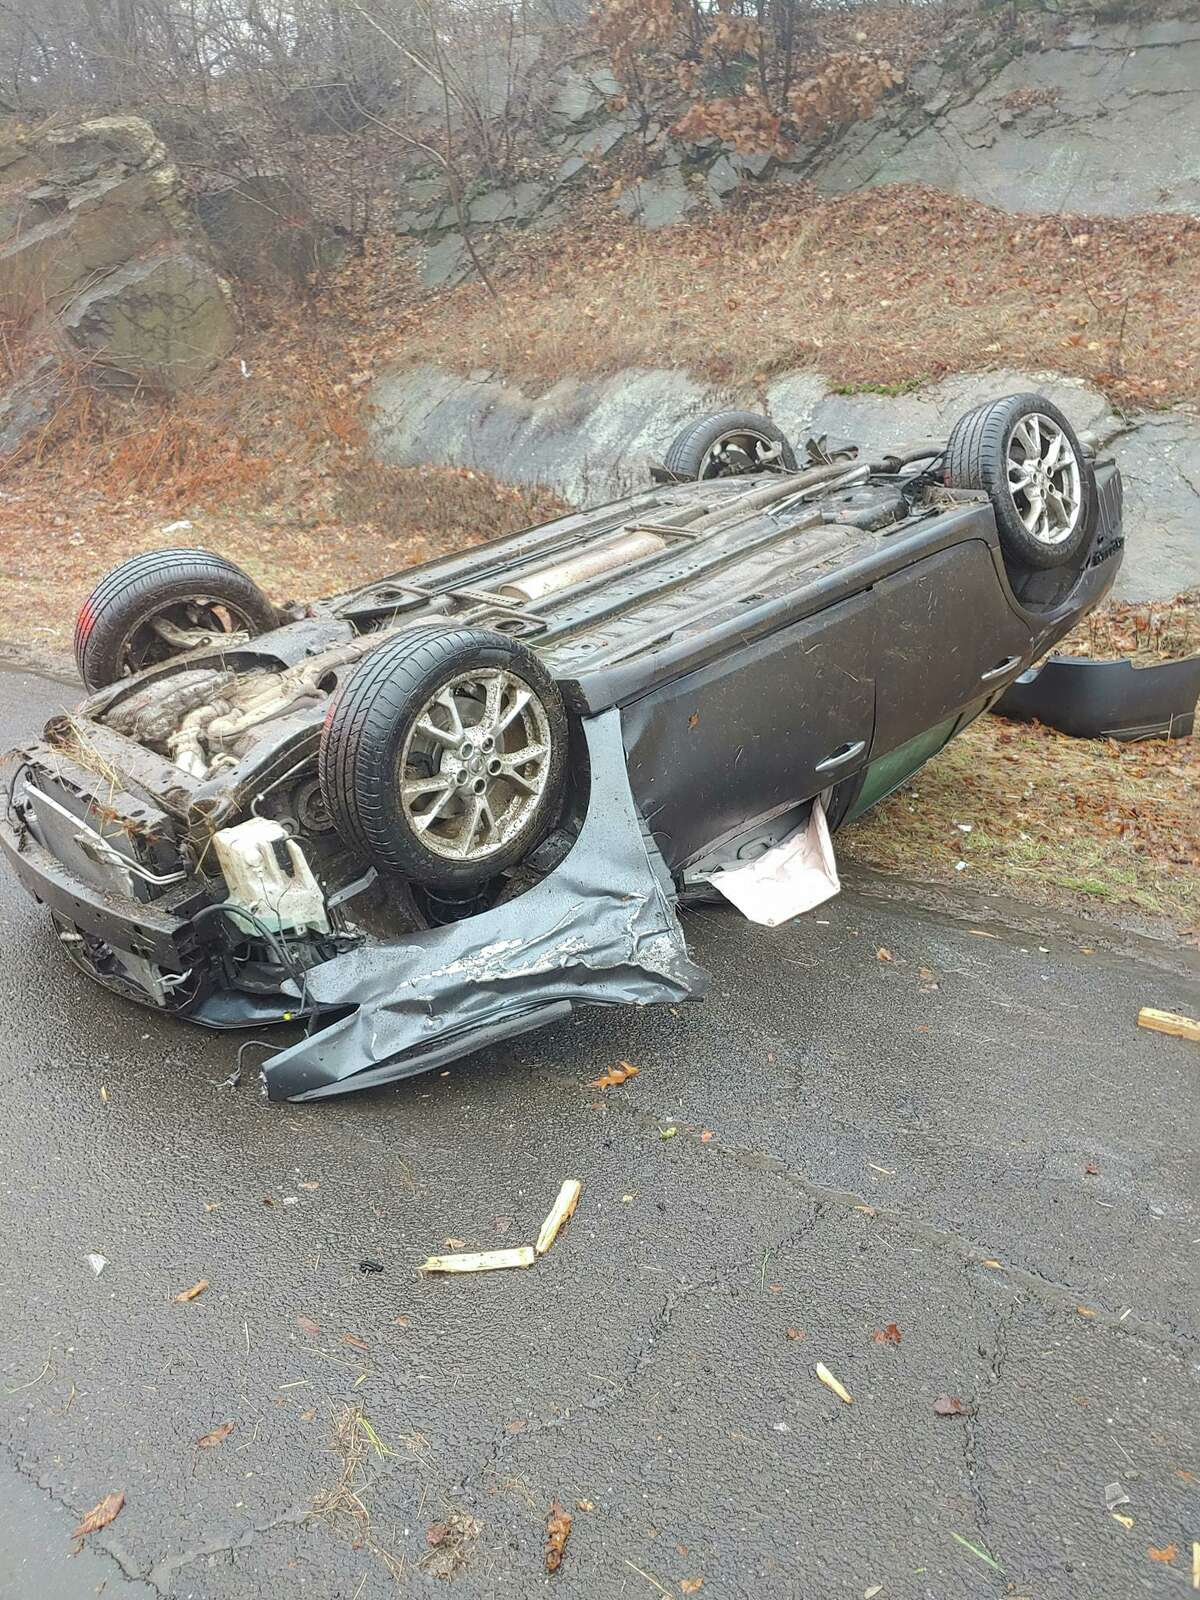 Just after 10 a.m. on Monday, Dec. 9, Echo Hose Hook & Ladder Co. 1 and Huntington Fire Co. 3 responded to a motor vehicle accident rollover on Route 8 southbound a half mile prior to exit 12.